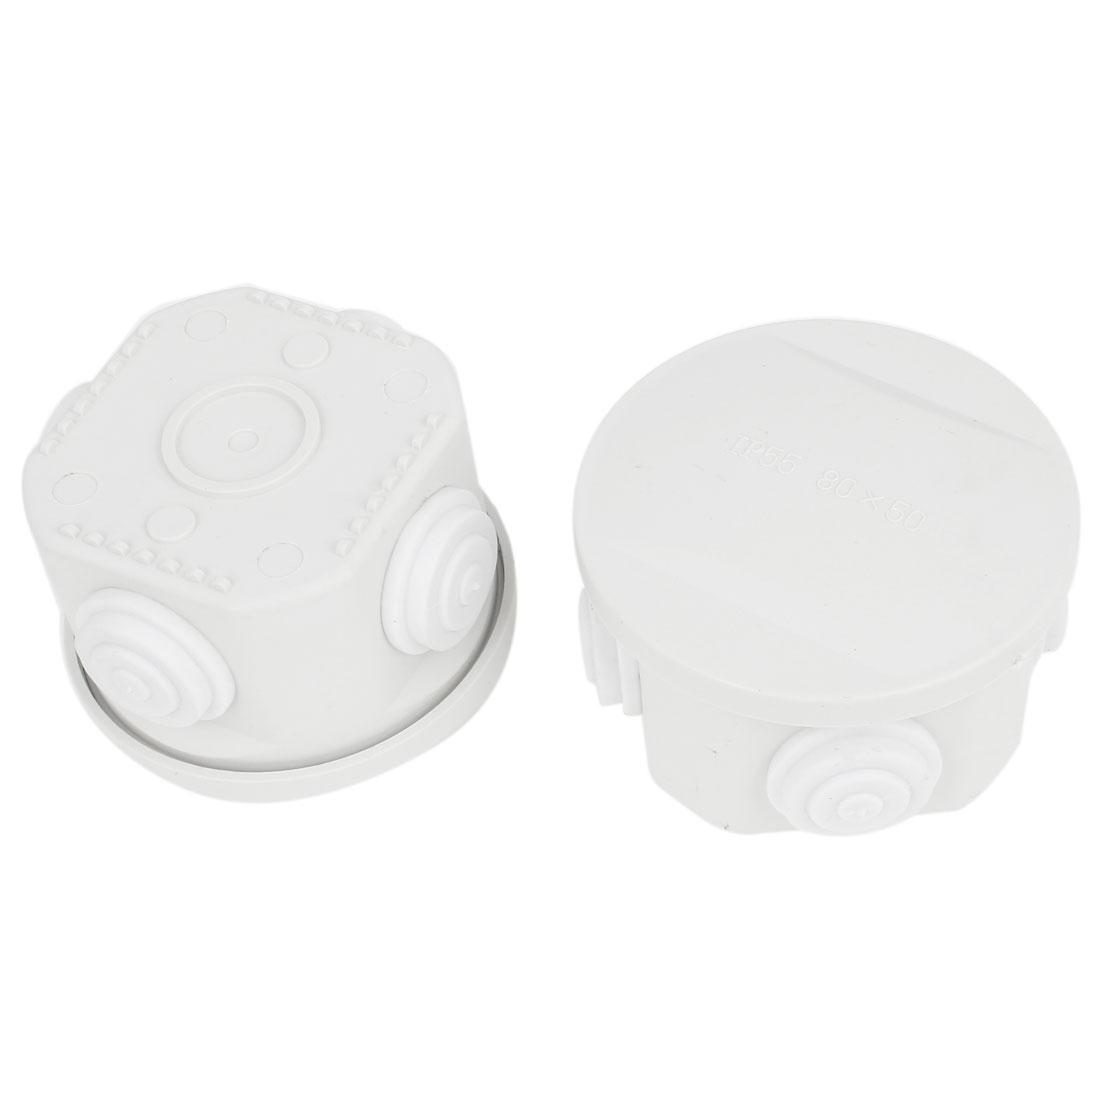 2 Pcs White ABS 80x50mm 4 Cable Entries Round Junction Box